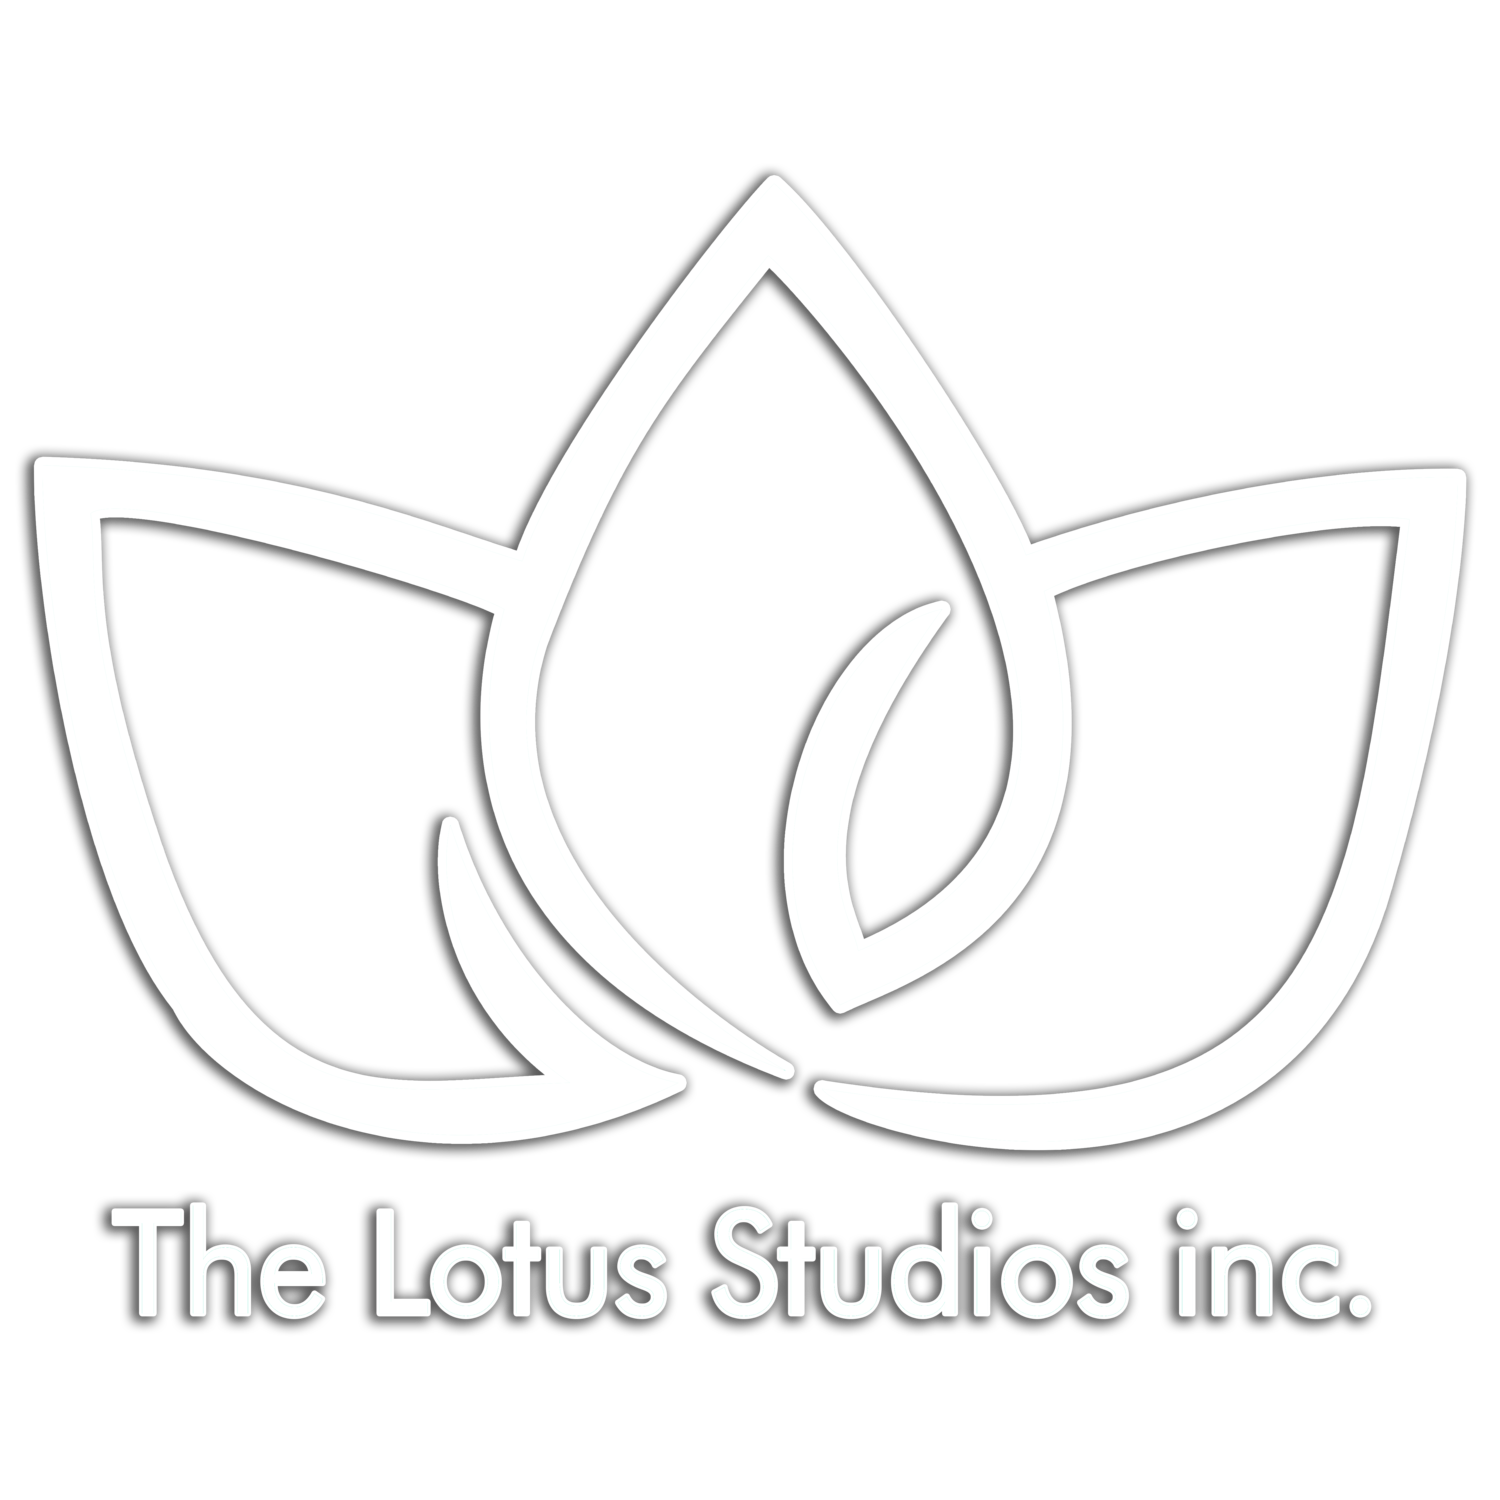 The Lotus Studios inc.